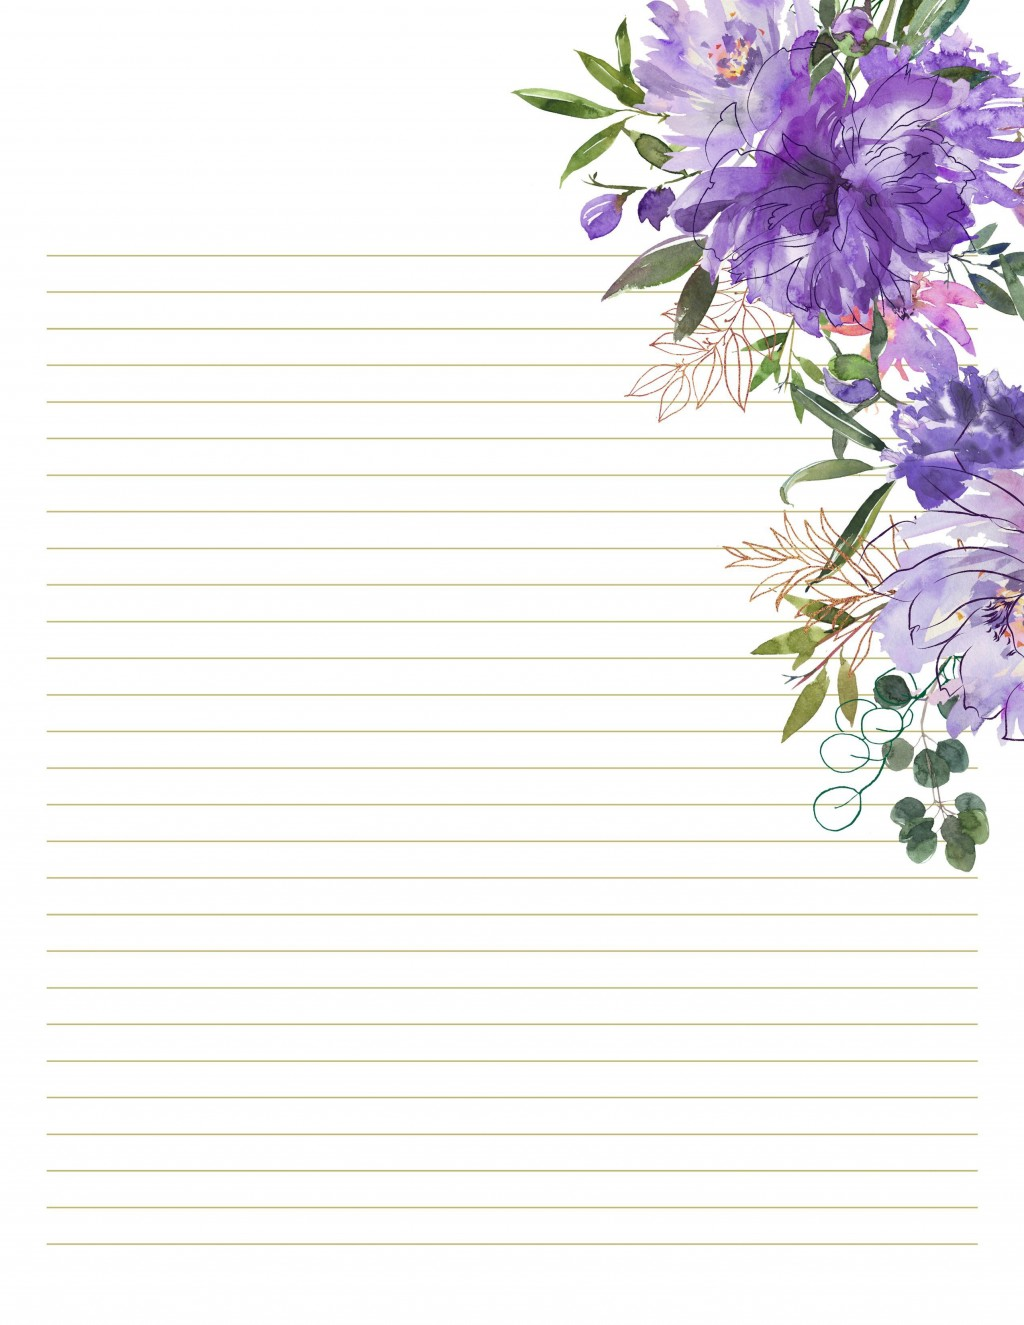 003 Formidable Free Printable Stationery Paper Template Photo  TemplatesLarge